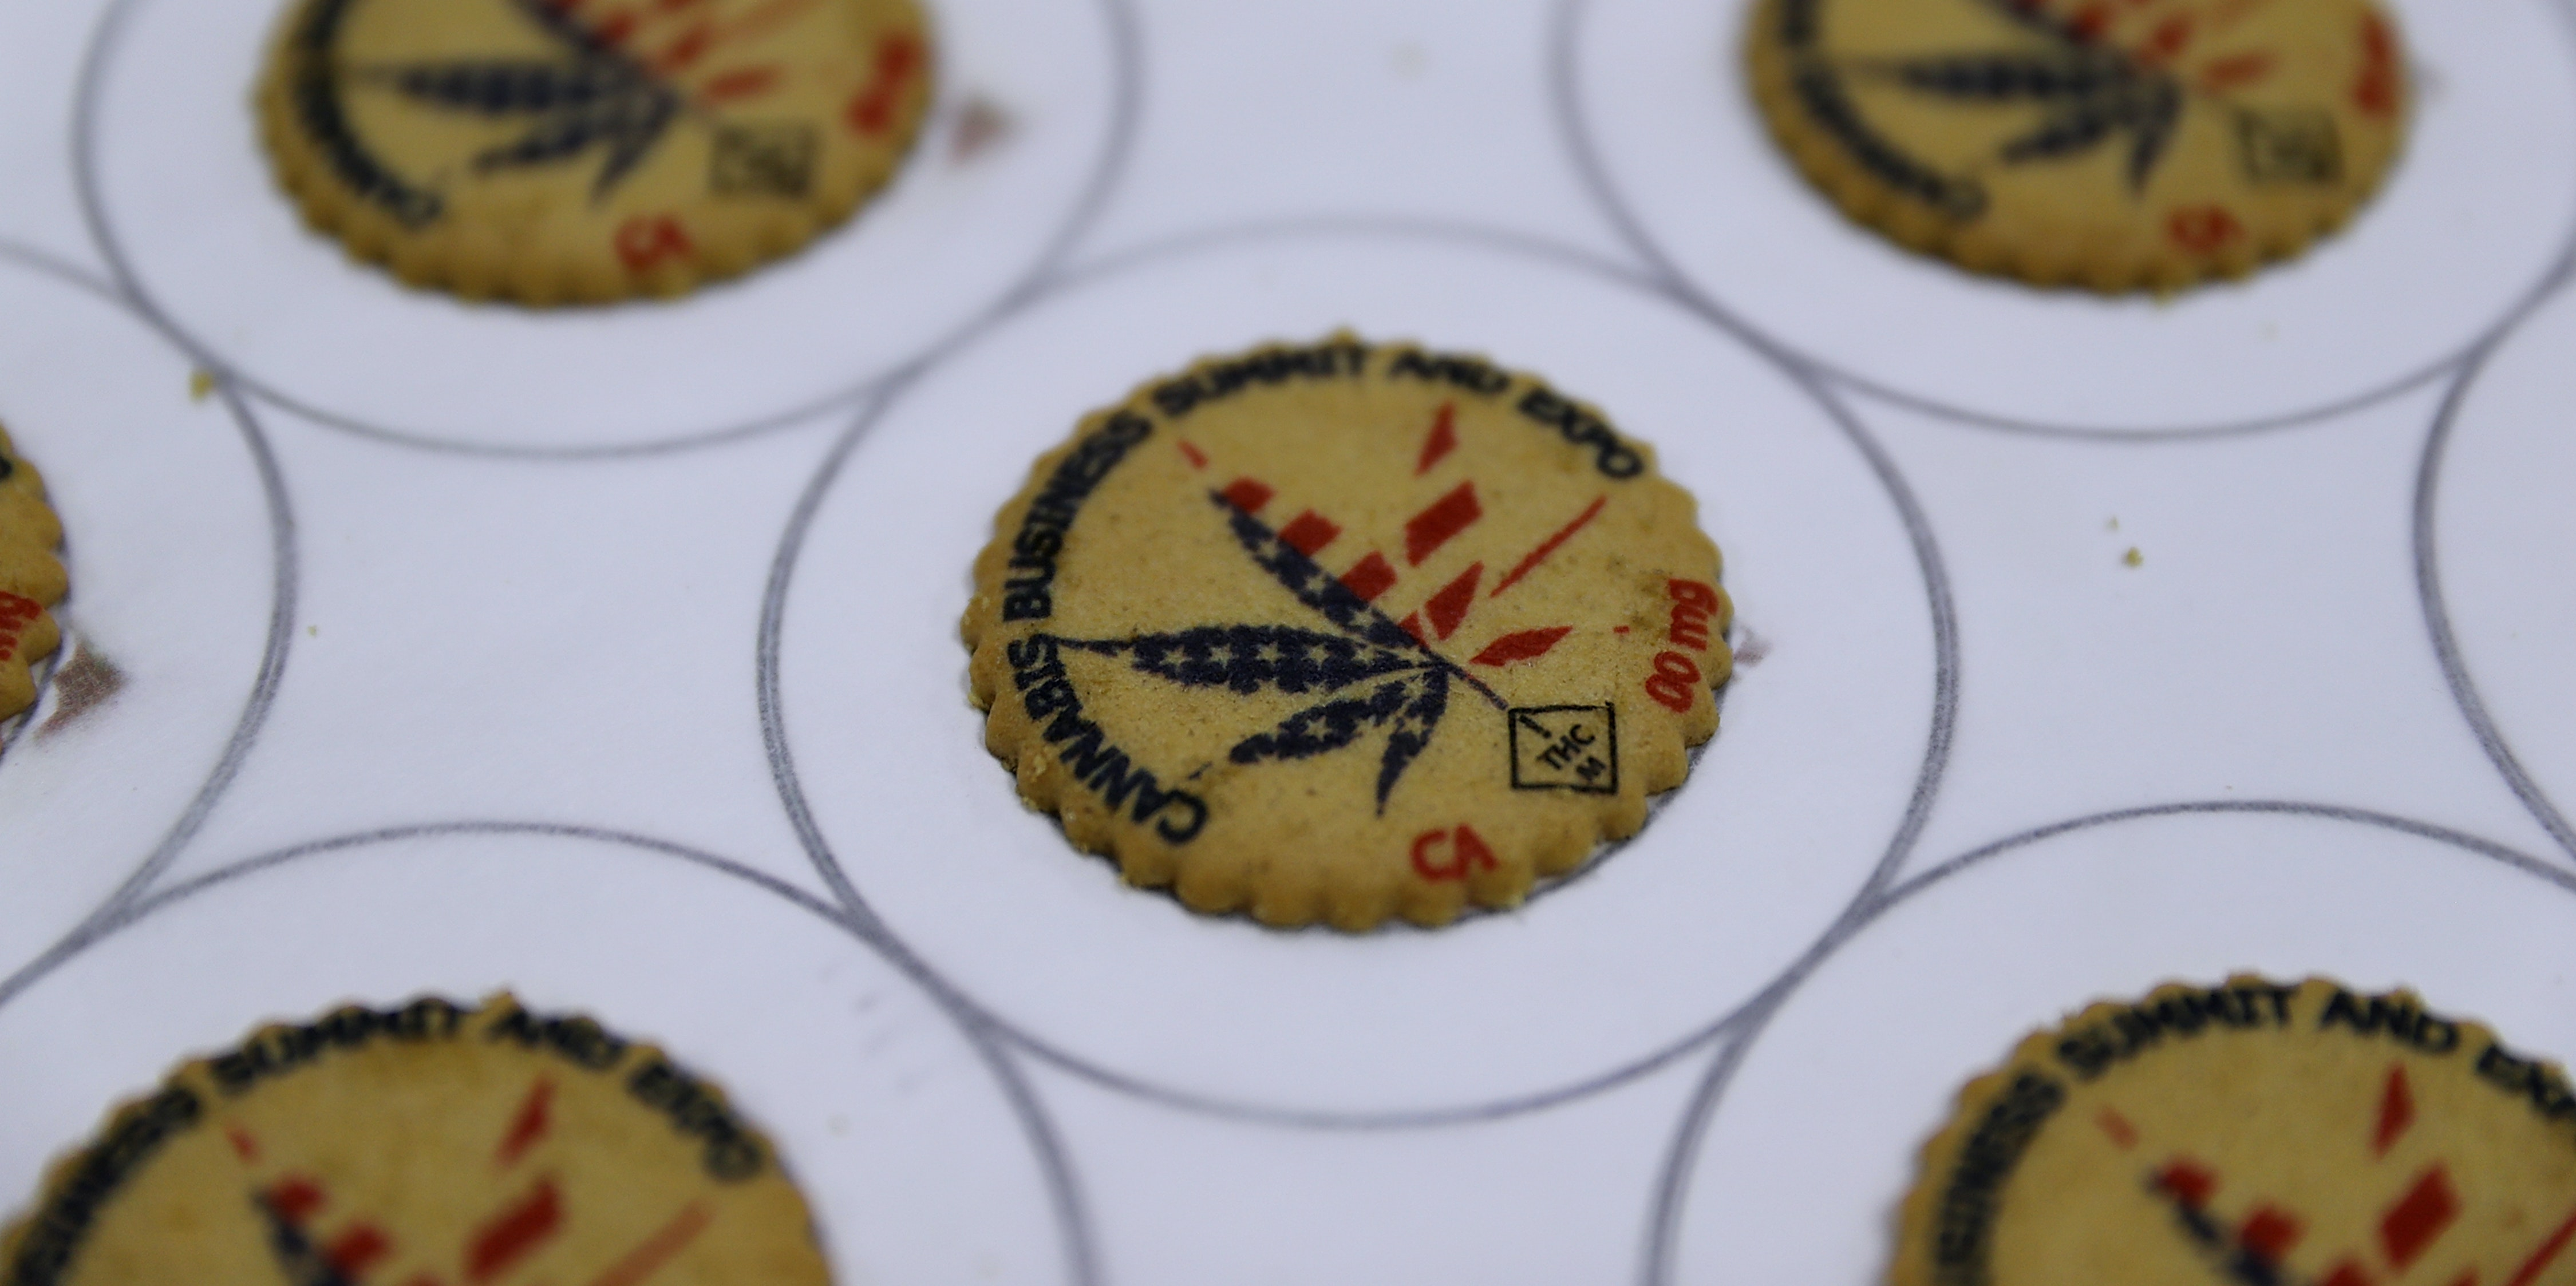 Cookies with a marijuana leaf printed on them are displayed during the 2016 Cannabis Business Summit & Expo  on June 22, 2016 in Oakland, California. Policy makers and innovators gathered for the three-day long Cannabis Business Summit & Expo.